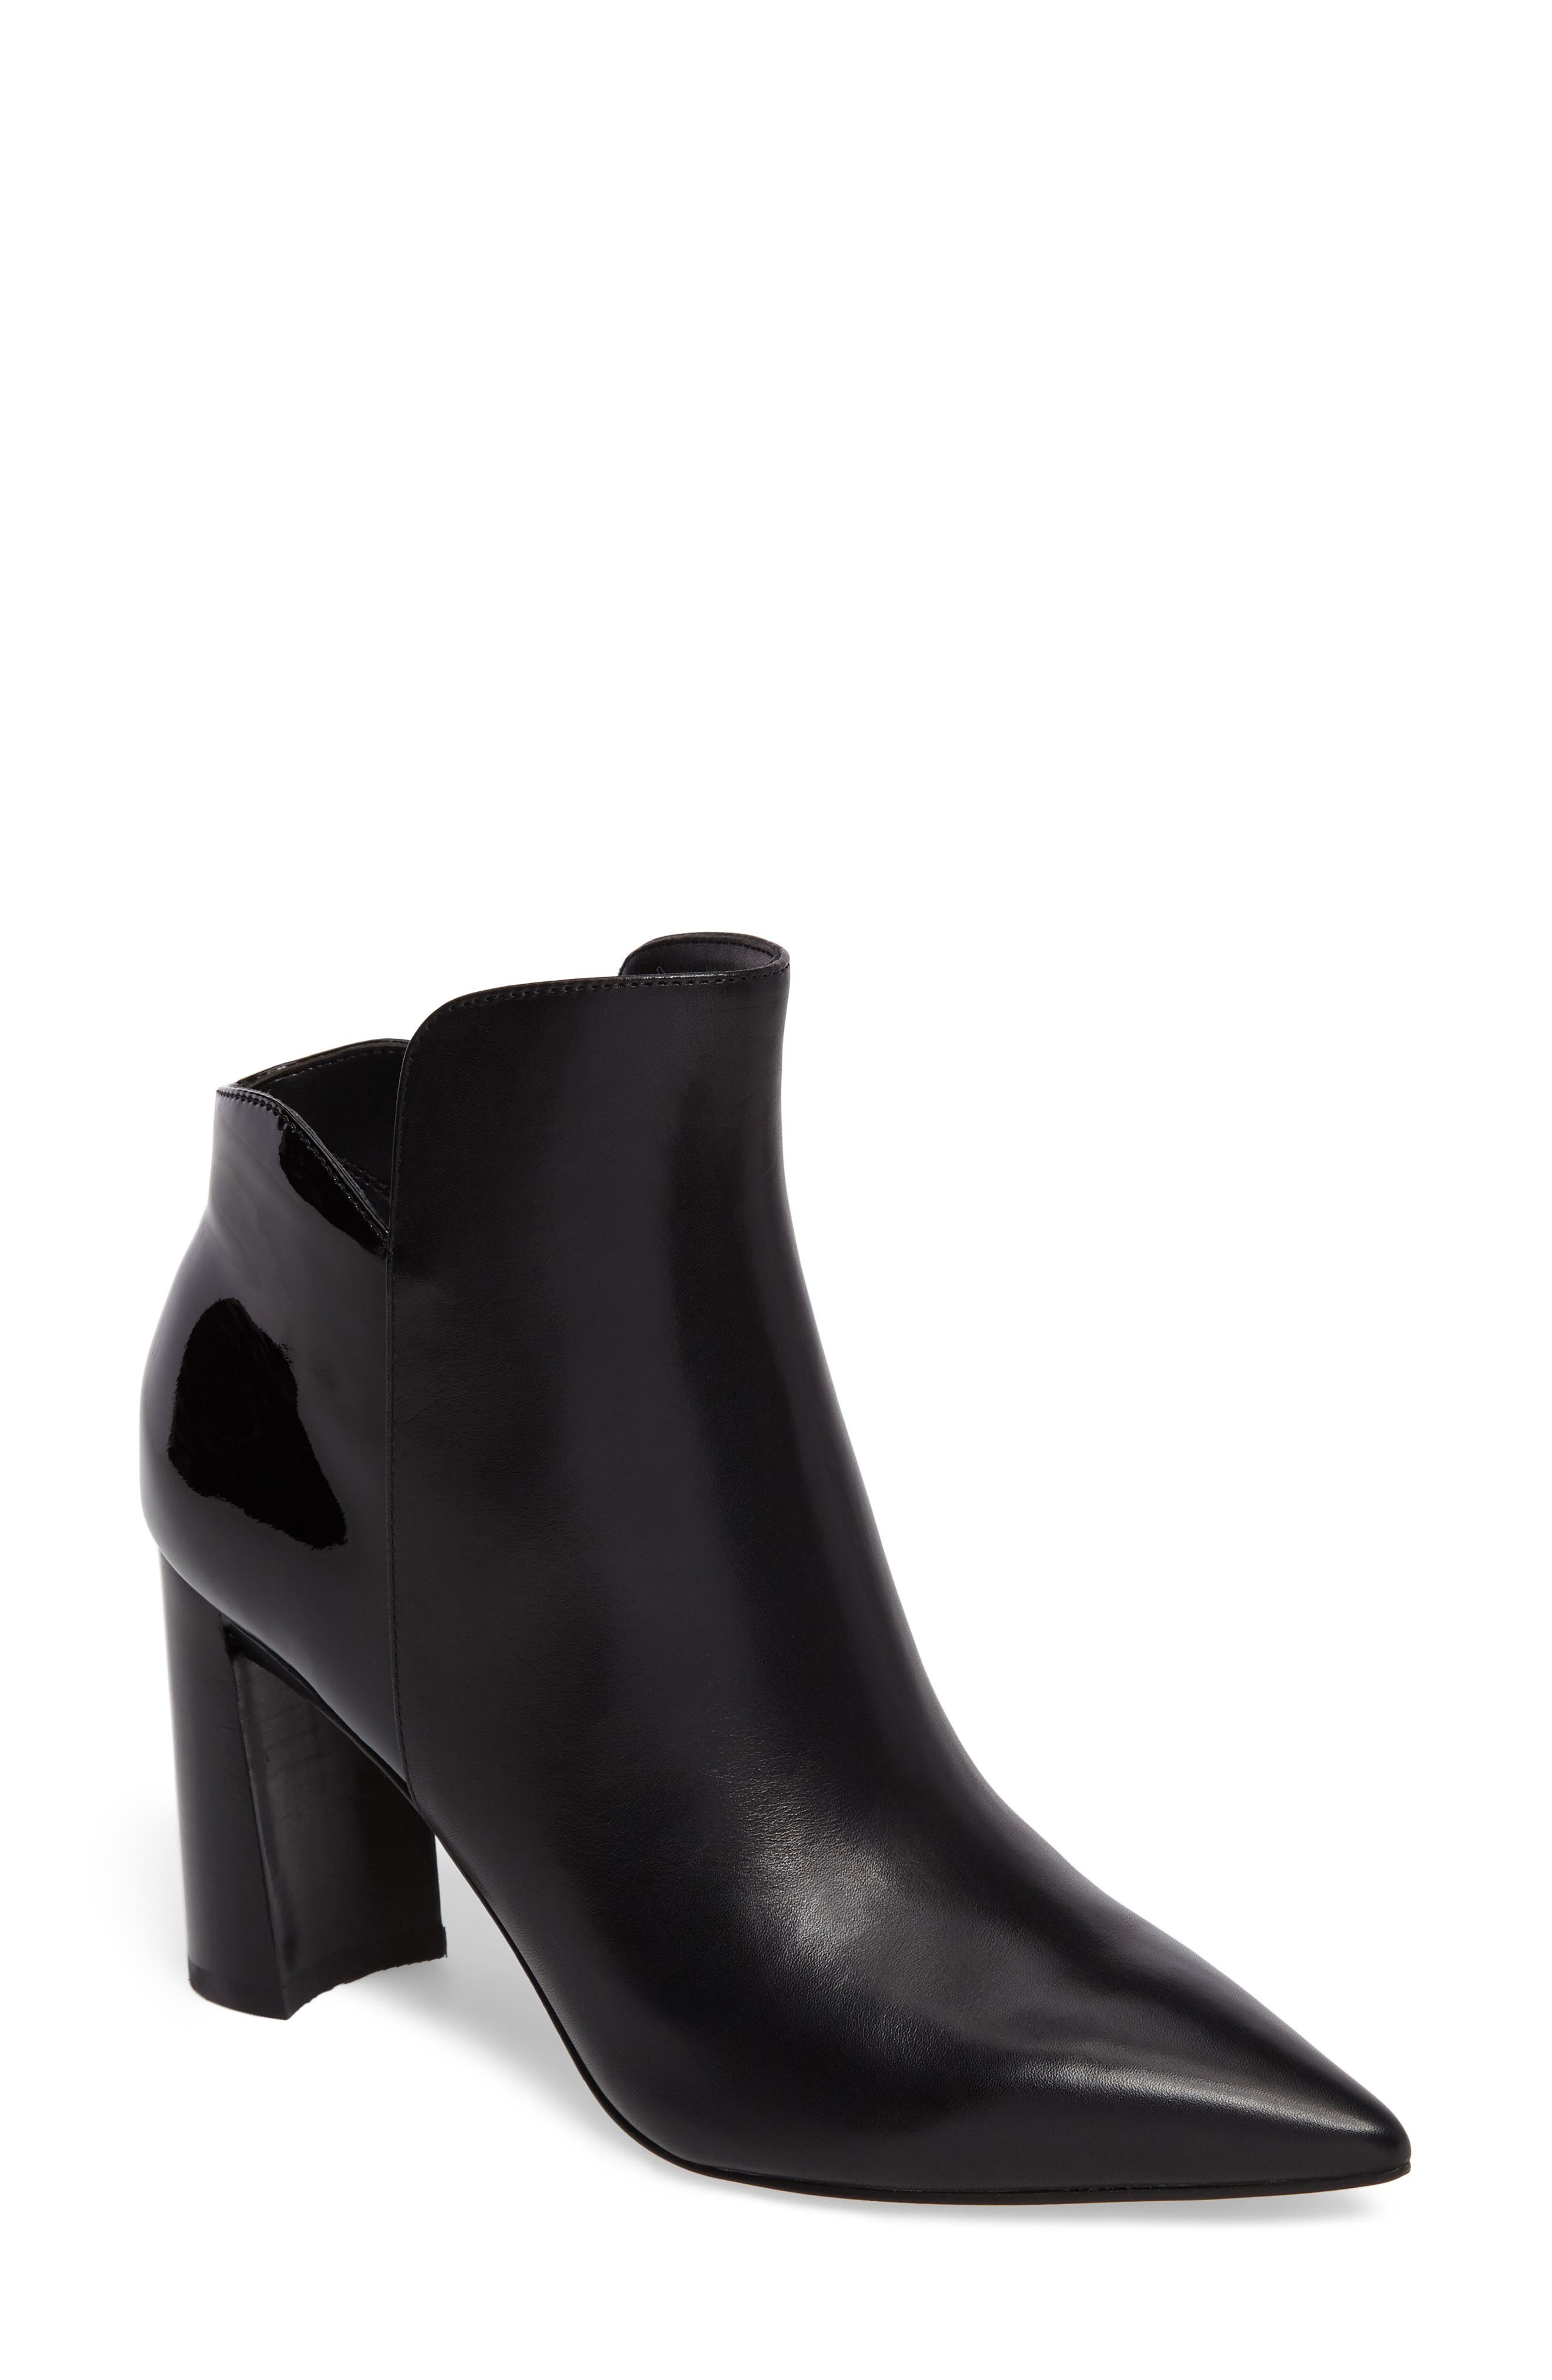 Harper Pointy Toe Bootie,                             Main thumbnail 1, color,                             001